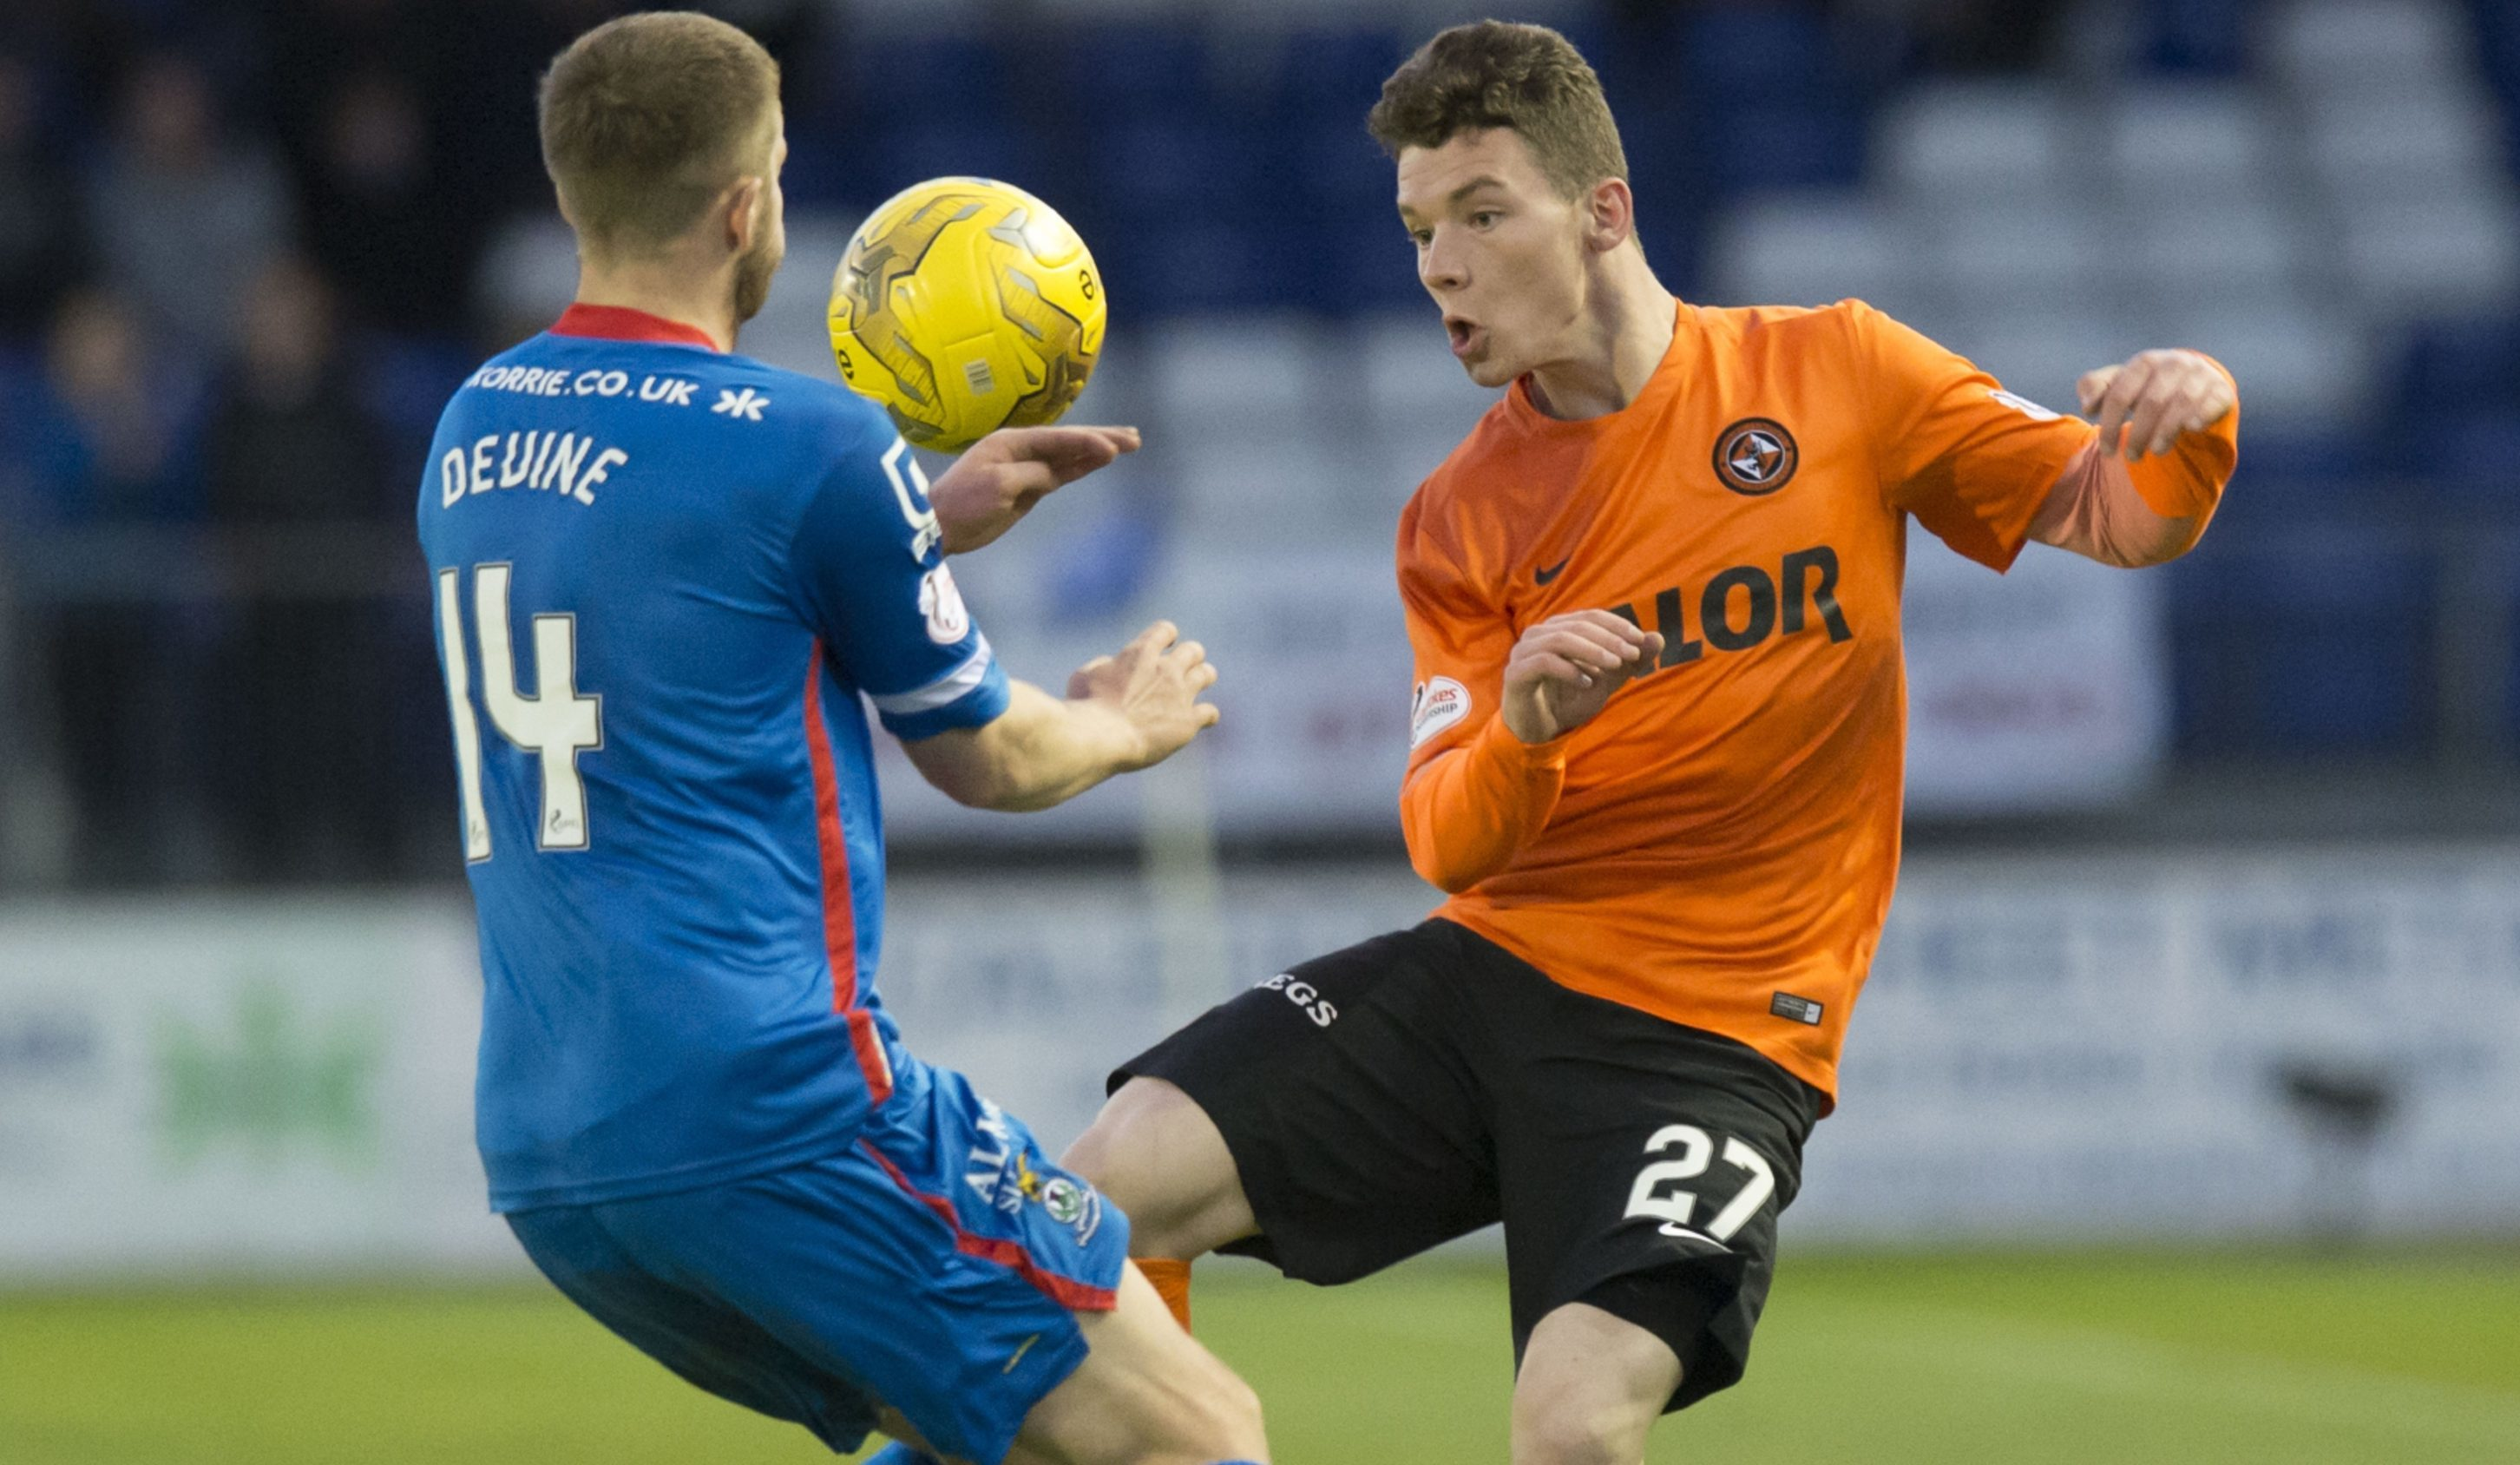 Ali Coote (right) in action against Inverness.